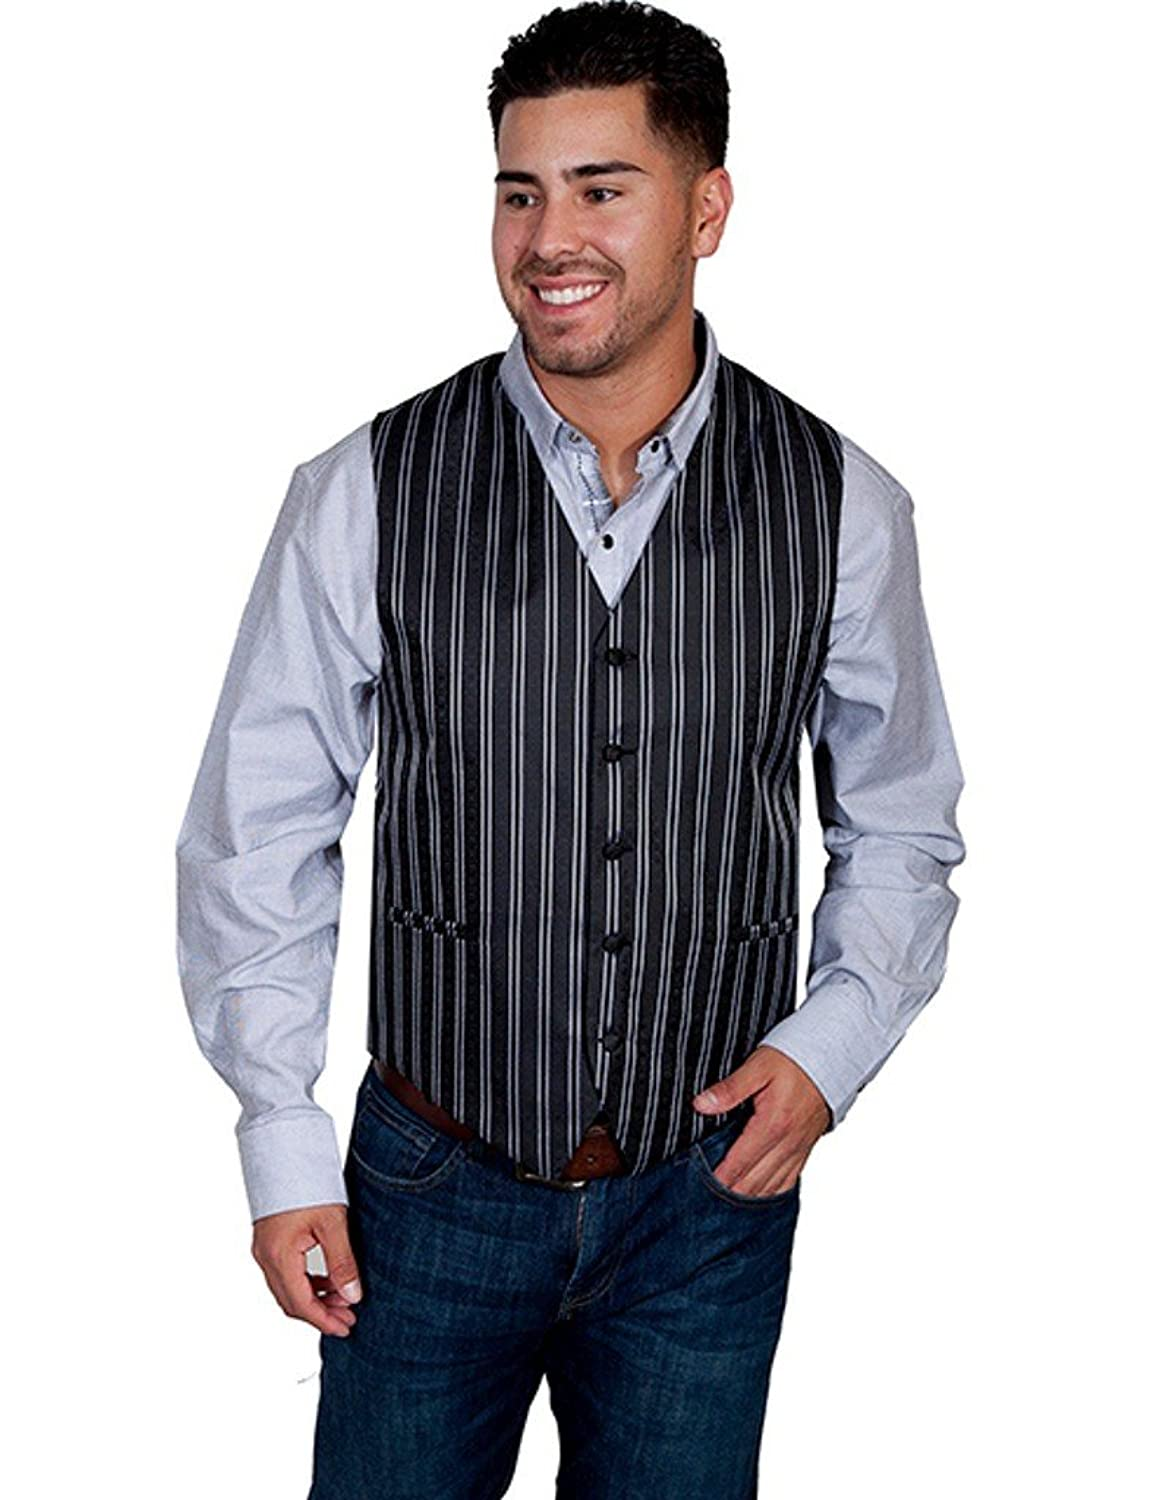 1900s Edwardian Men's Suits and Coats BIg TALL Sophisticated Double Pinstripe Western Vest $55.05 AT vintagedancer.com